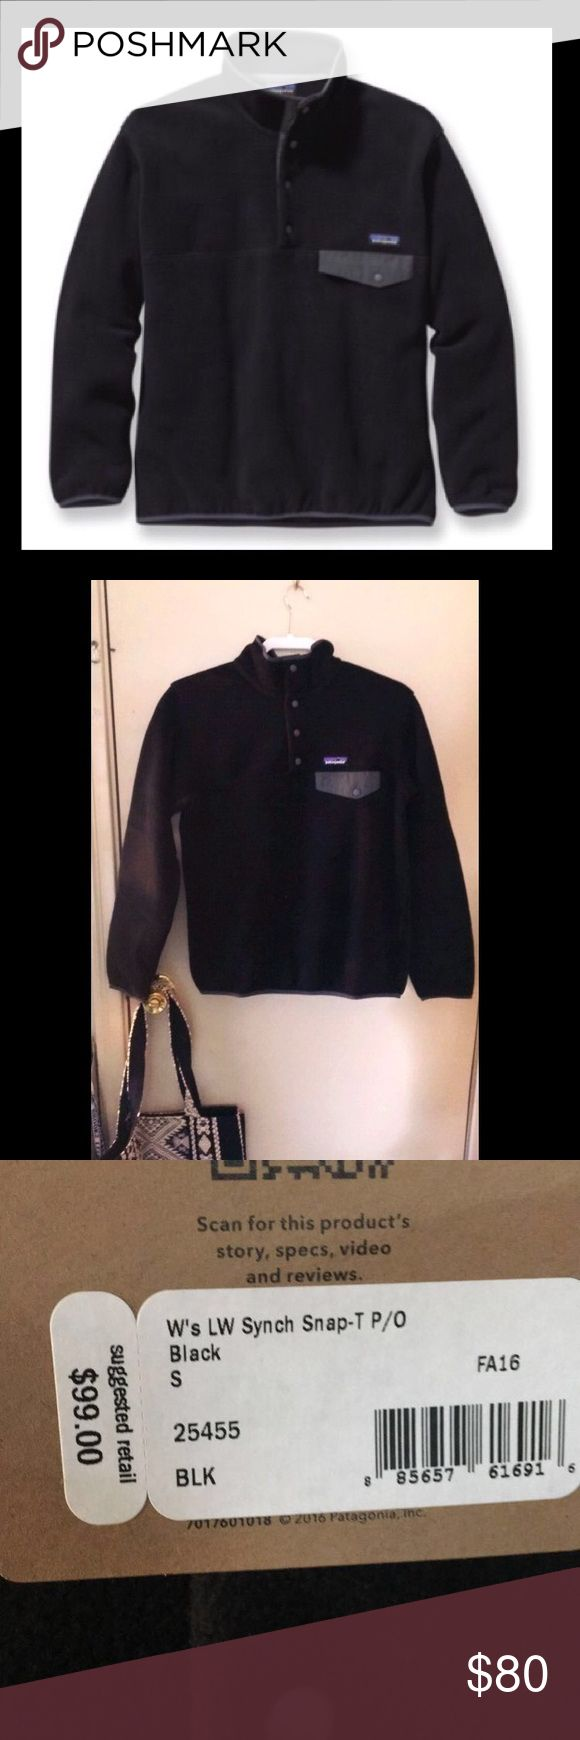 Patagonia Synchilla Jacket Black Patagonia synchilla jacket, NWT, unworn and in brand new condition!!! Patagonia Jackets & Coats